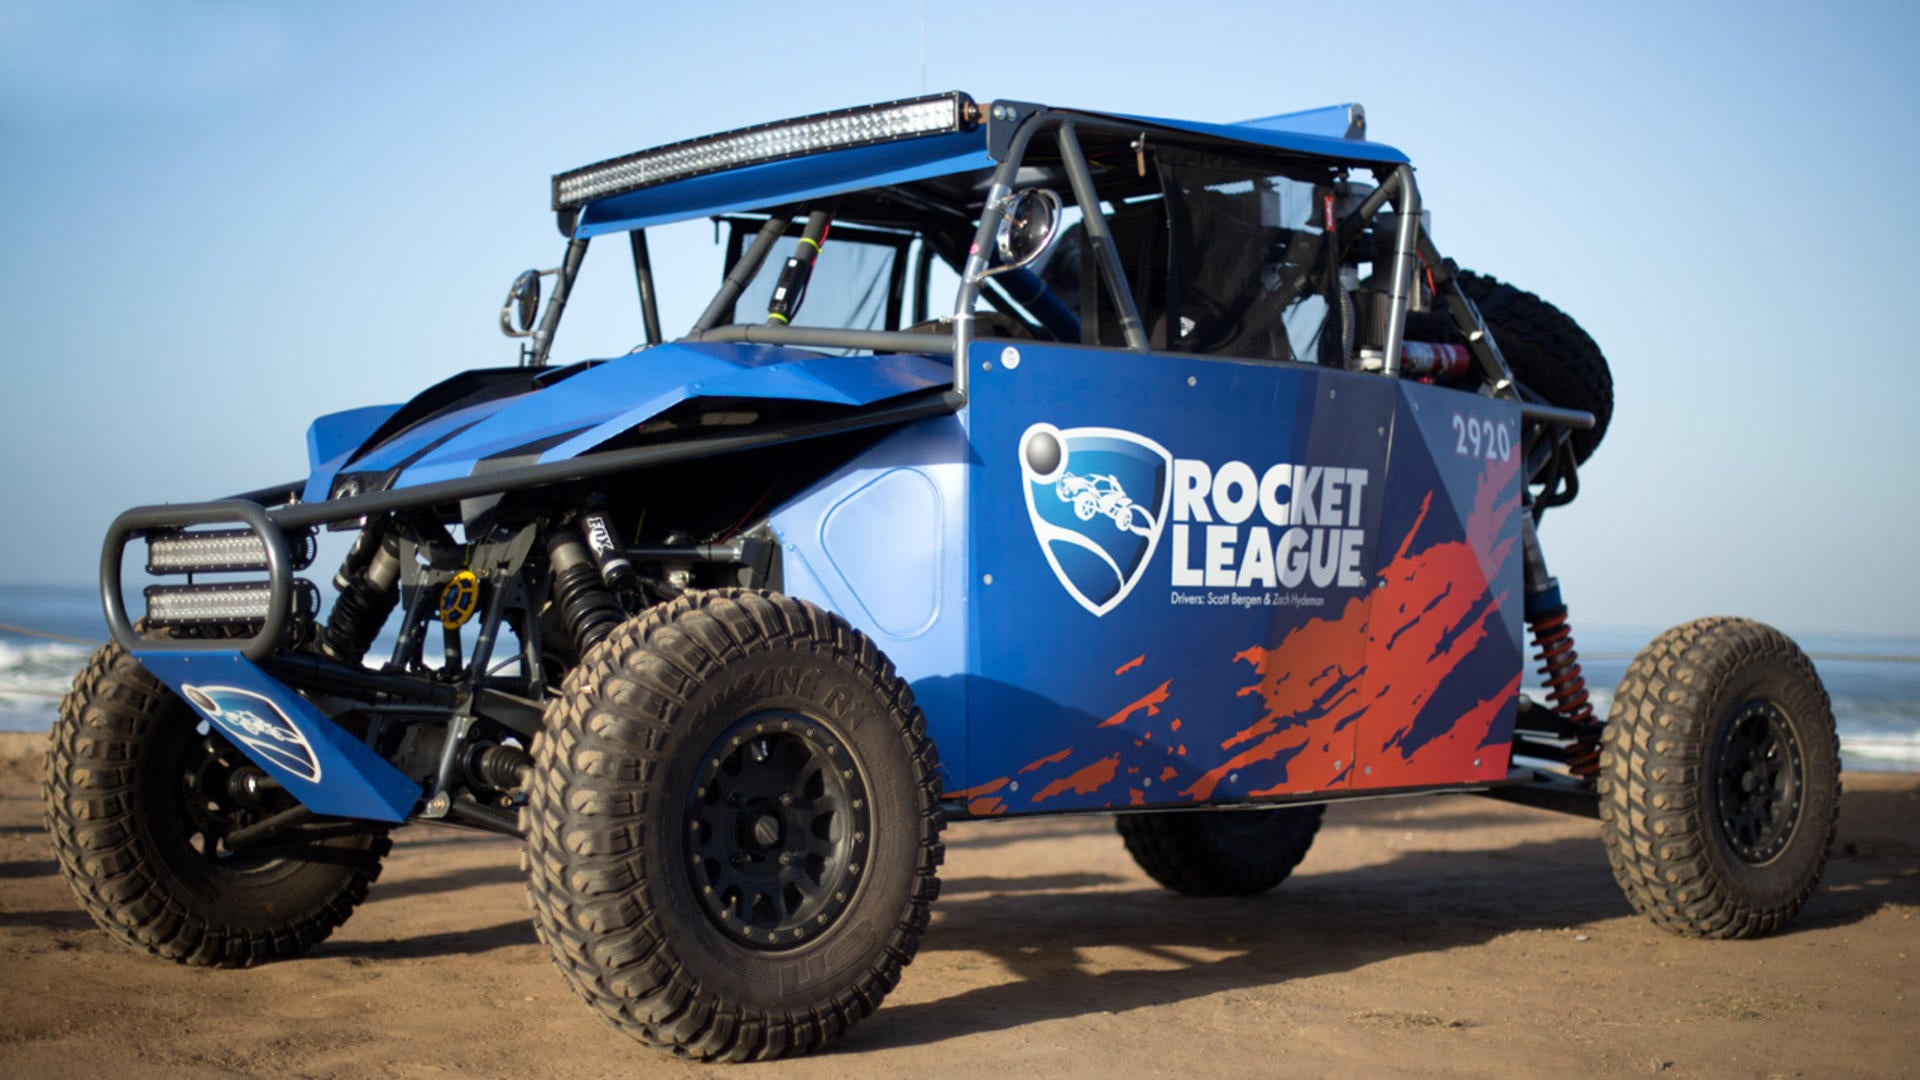 Team Rocket League <br> Takes On The Baja 1000 Image